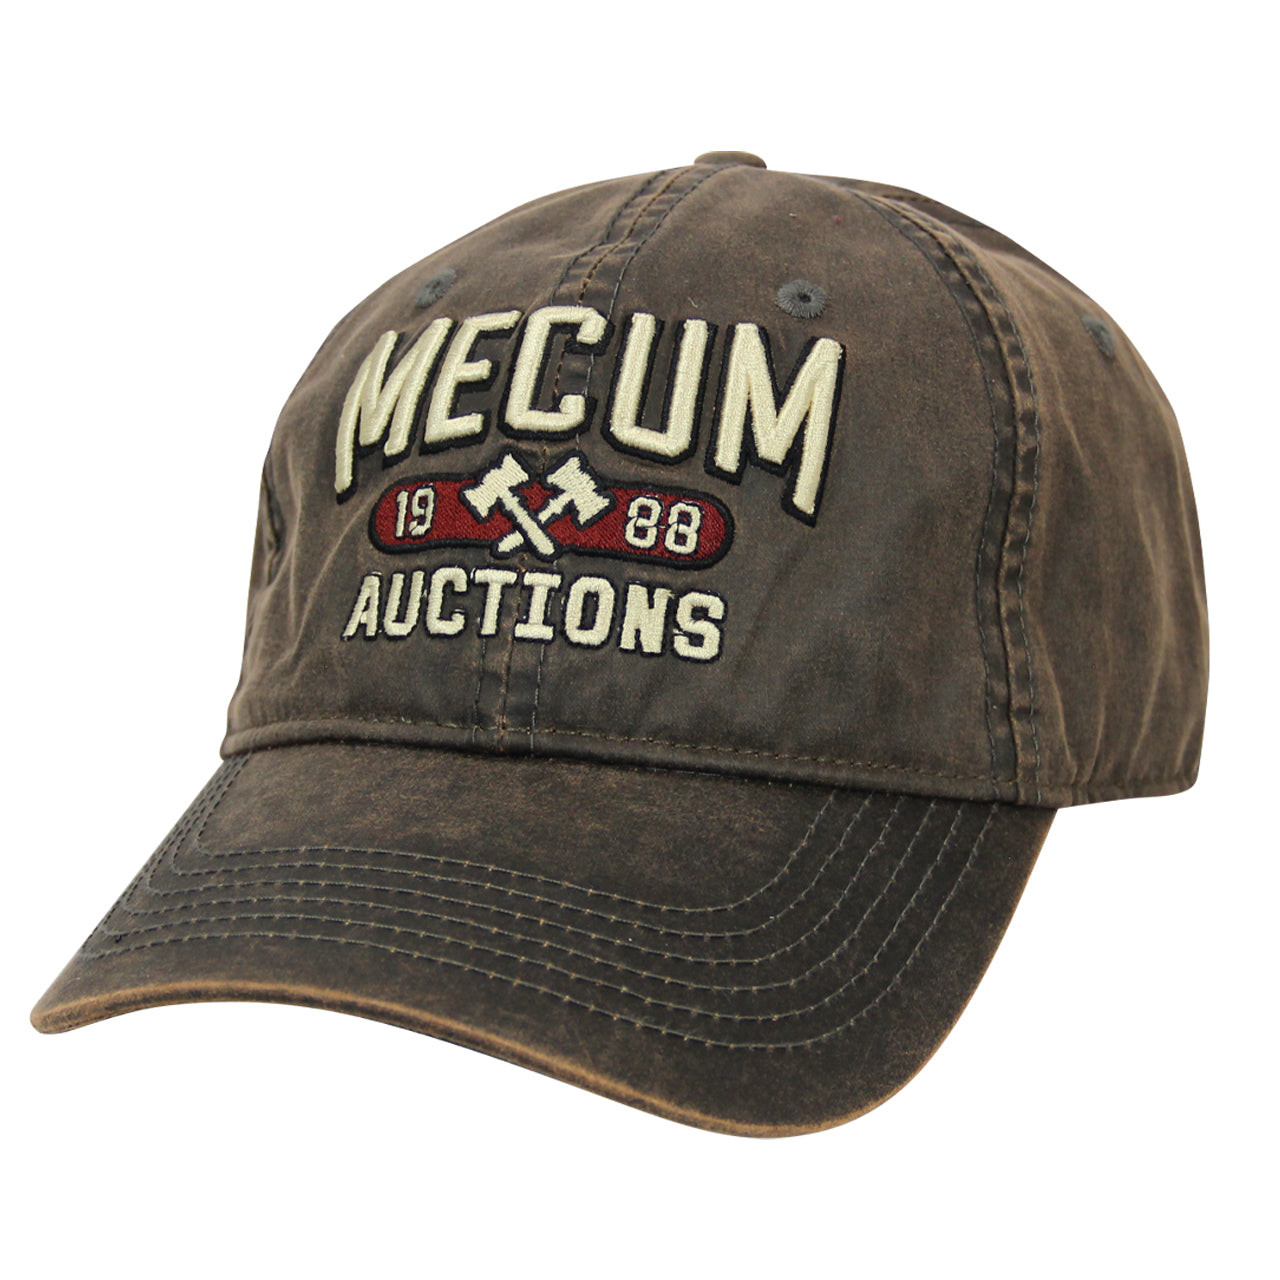 Picture of 2020 Mecum Men's Brown Waxed 1988 Hat Front